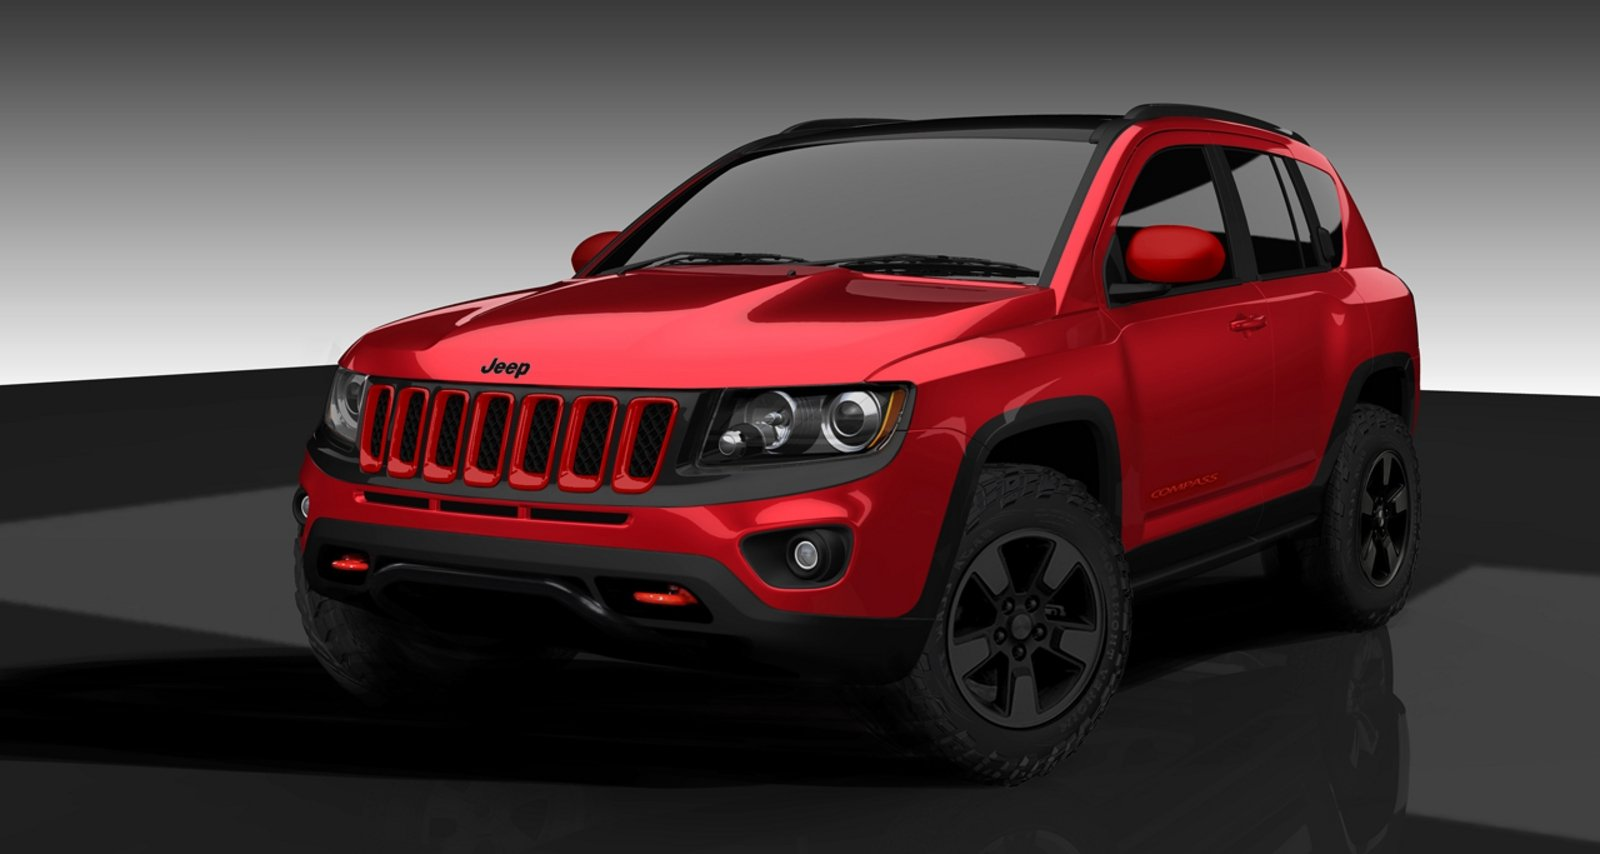 Lifted Jeep Wrangler >> 2012 Jeep Compass 'True North' By Mopar Review - Top Speed